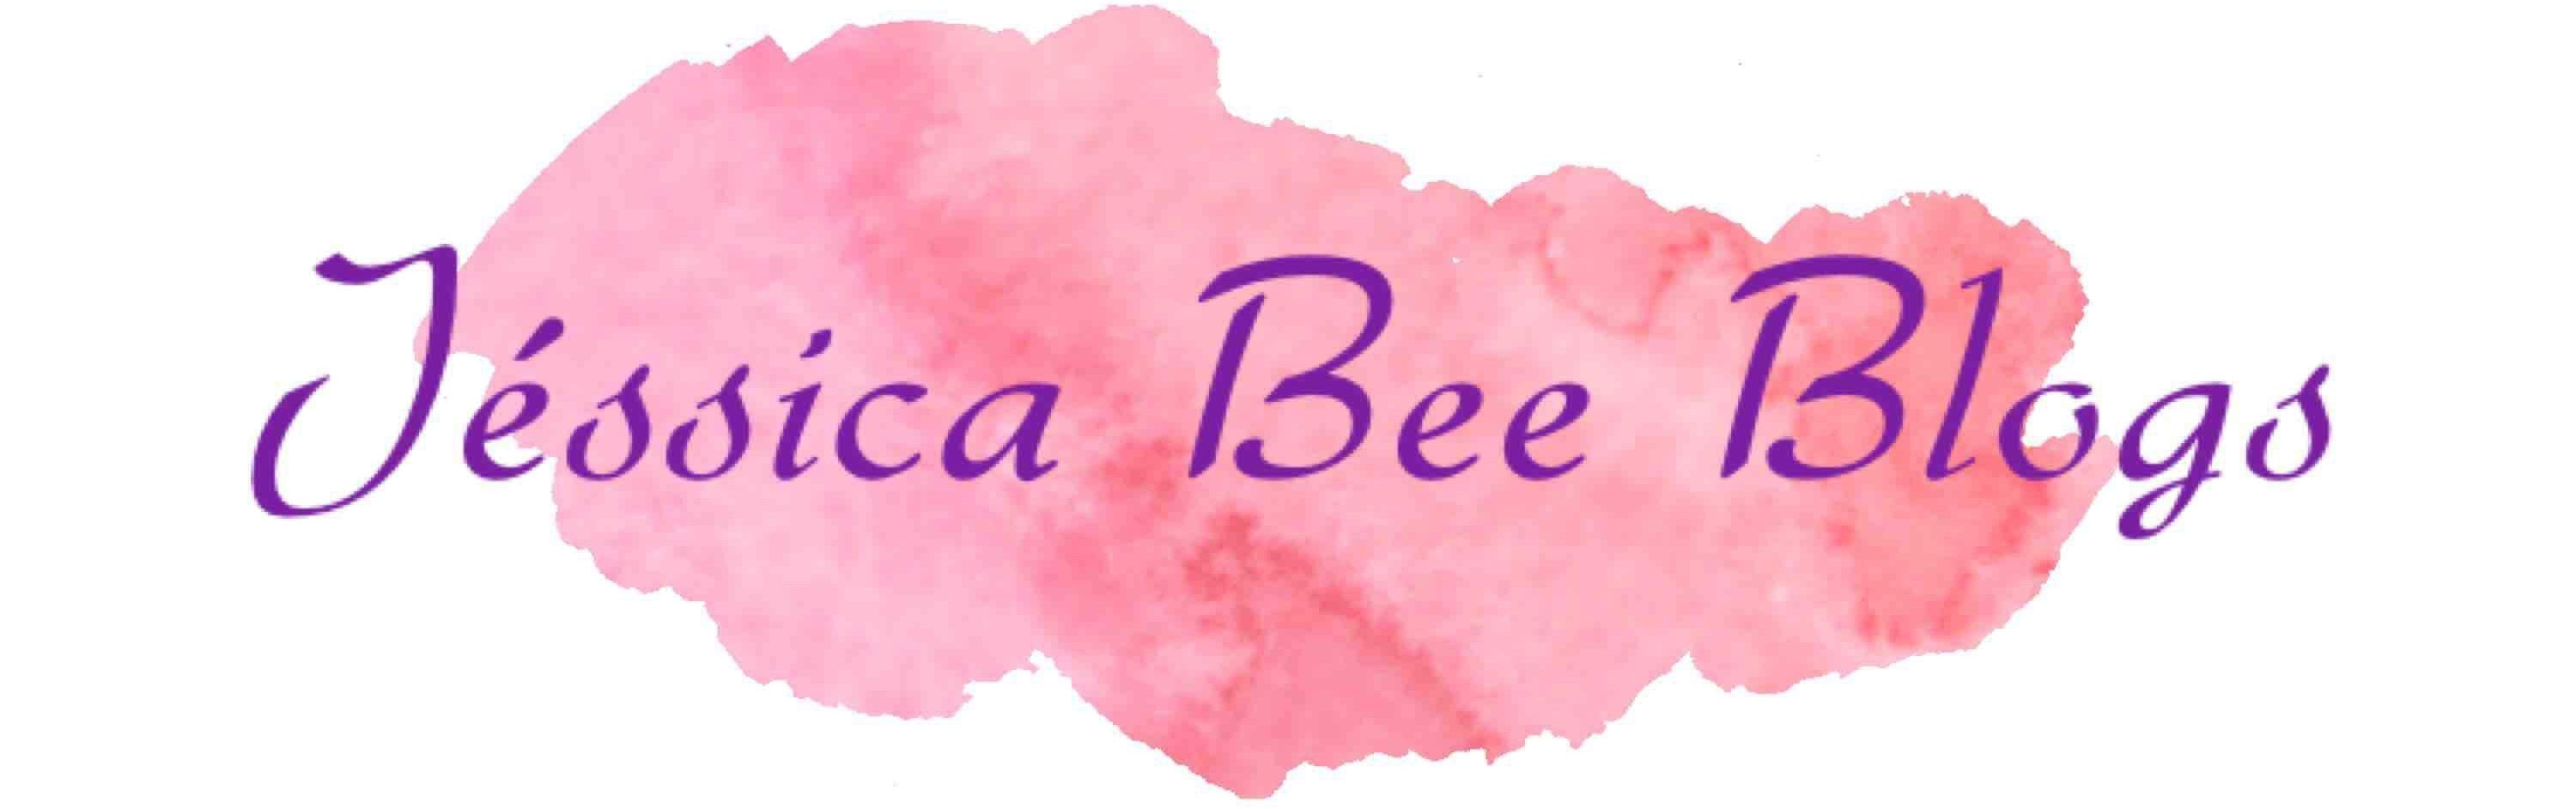 Jéssica Bee Blogs